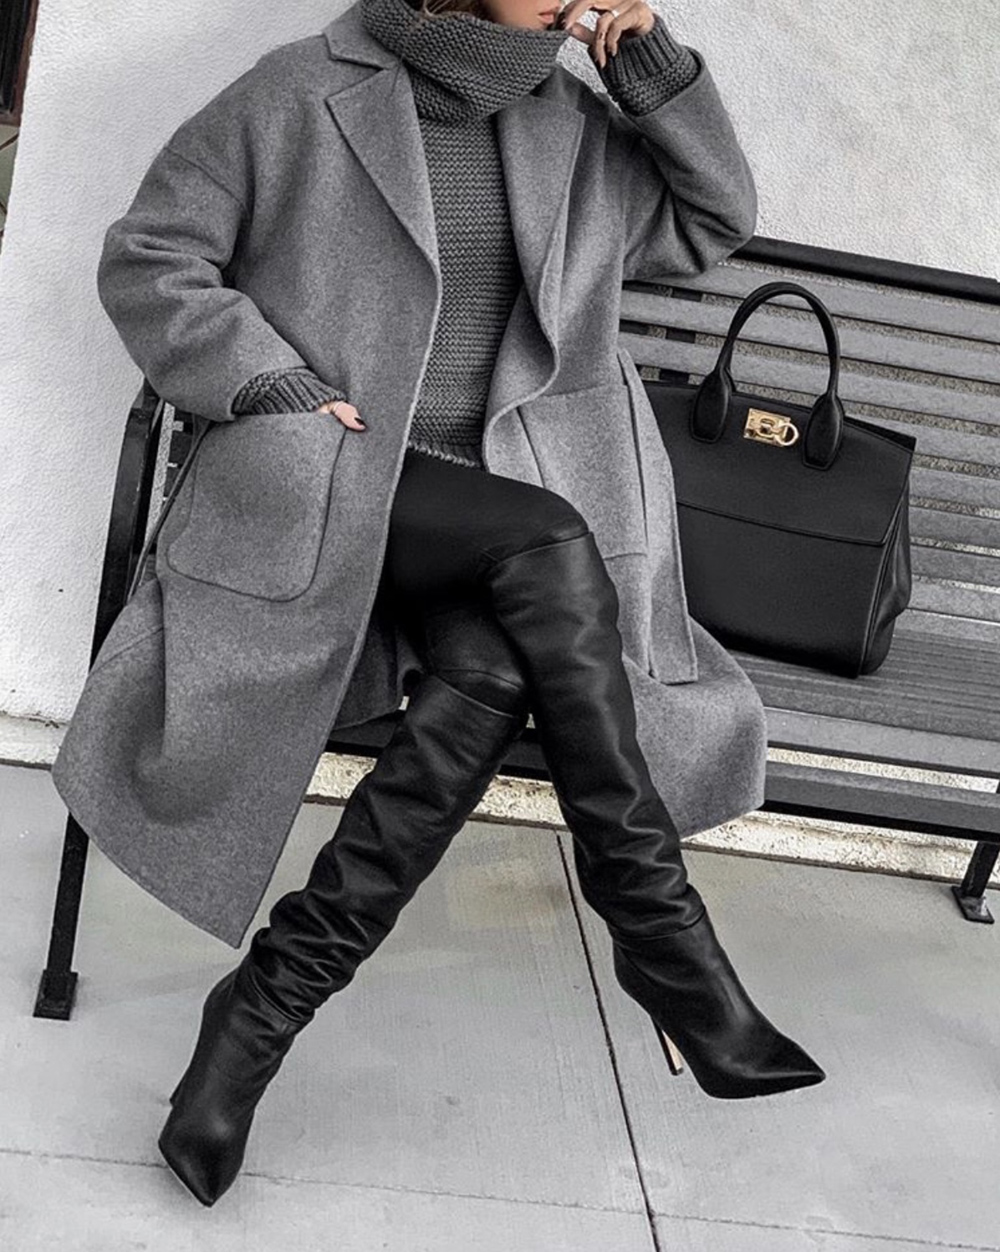 shoes every woman needs, over the knee boots | lolariostyle.com